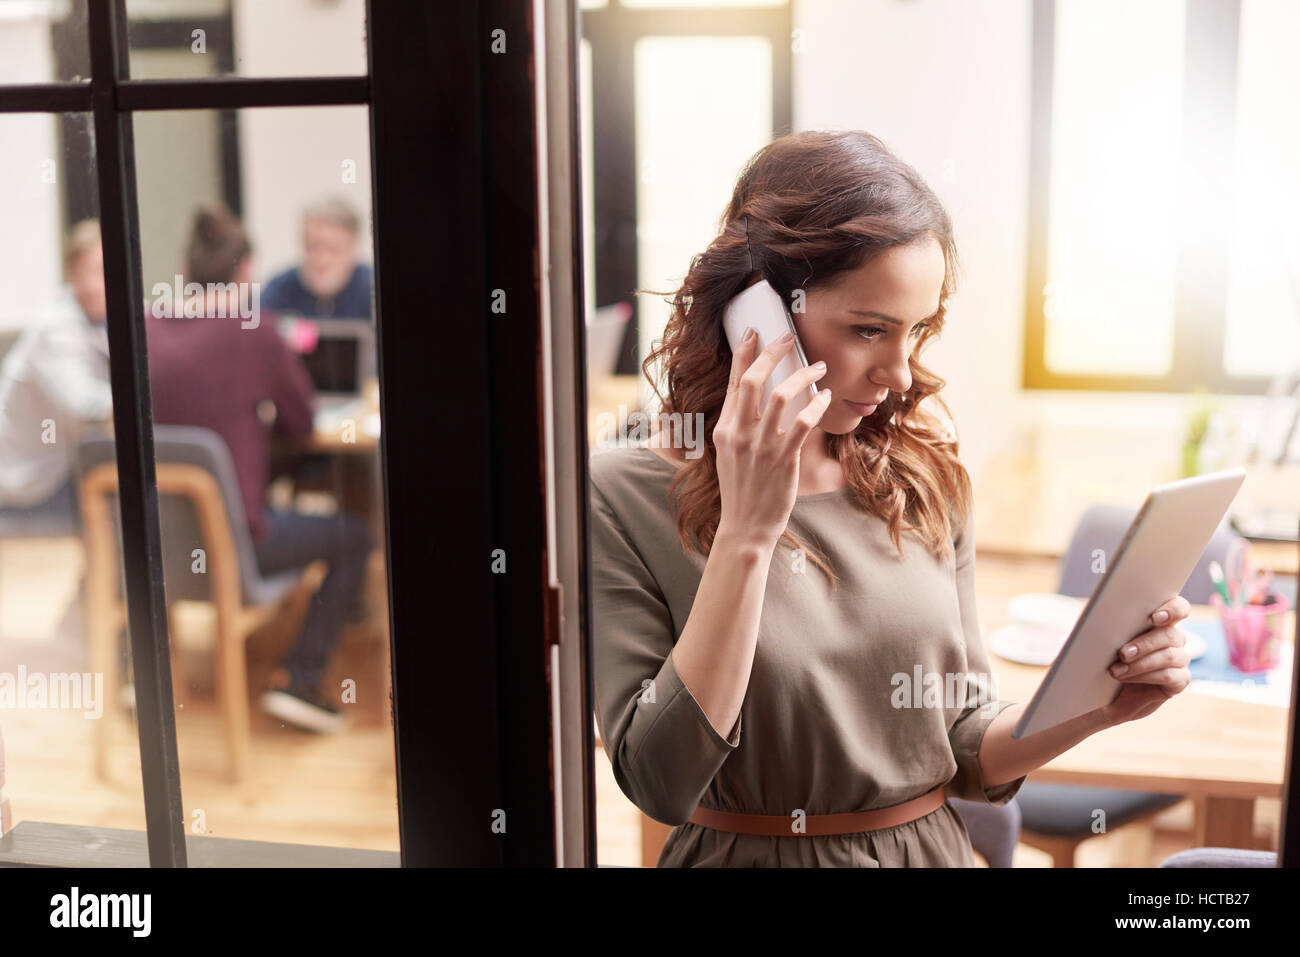 Searching the free time for customer - Stock Image